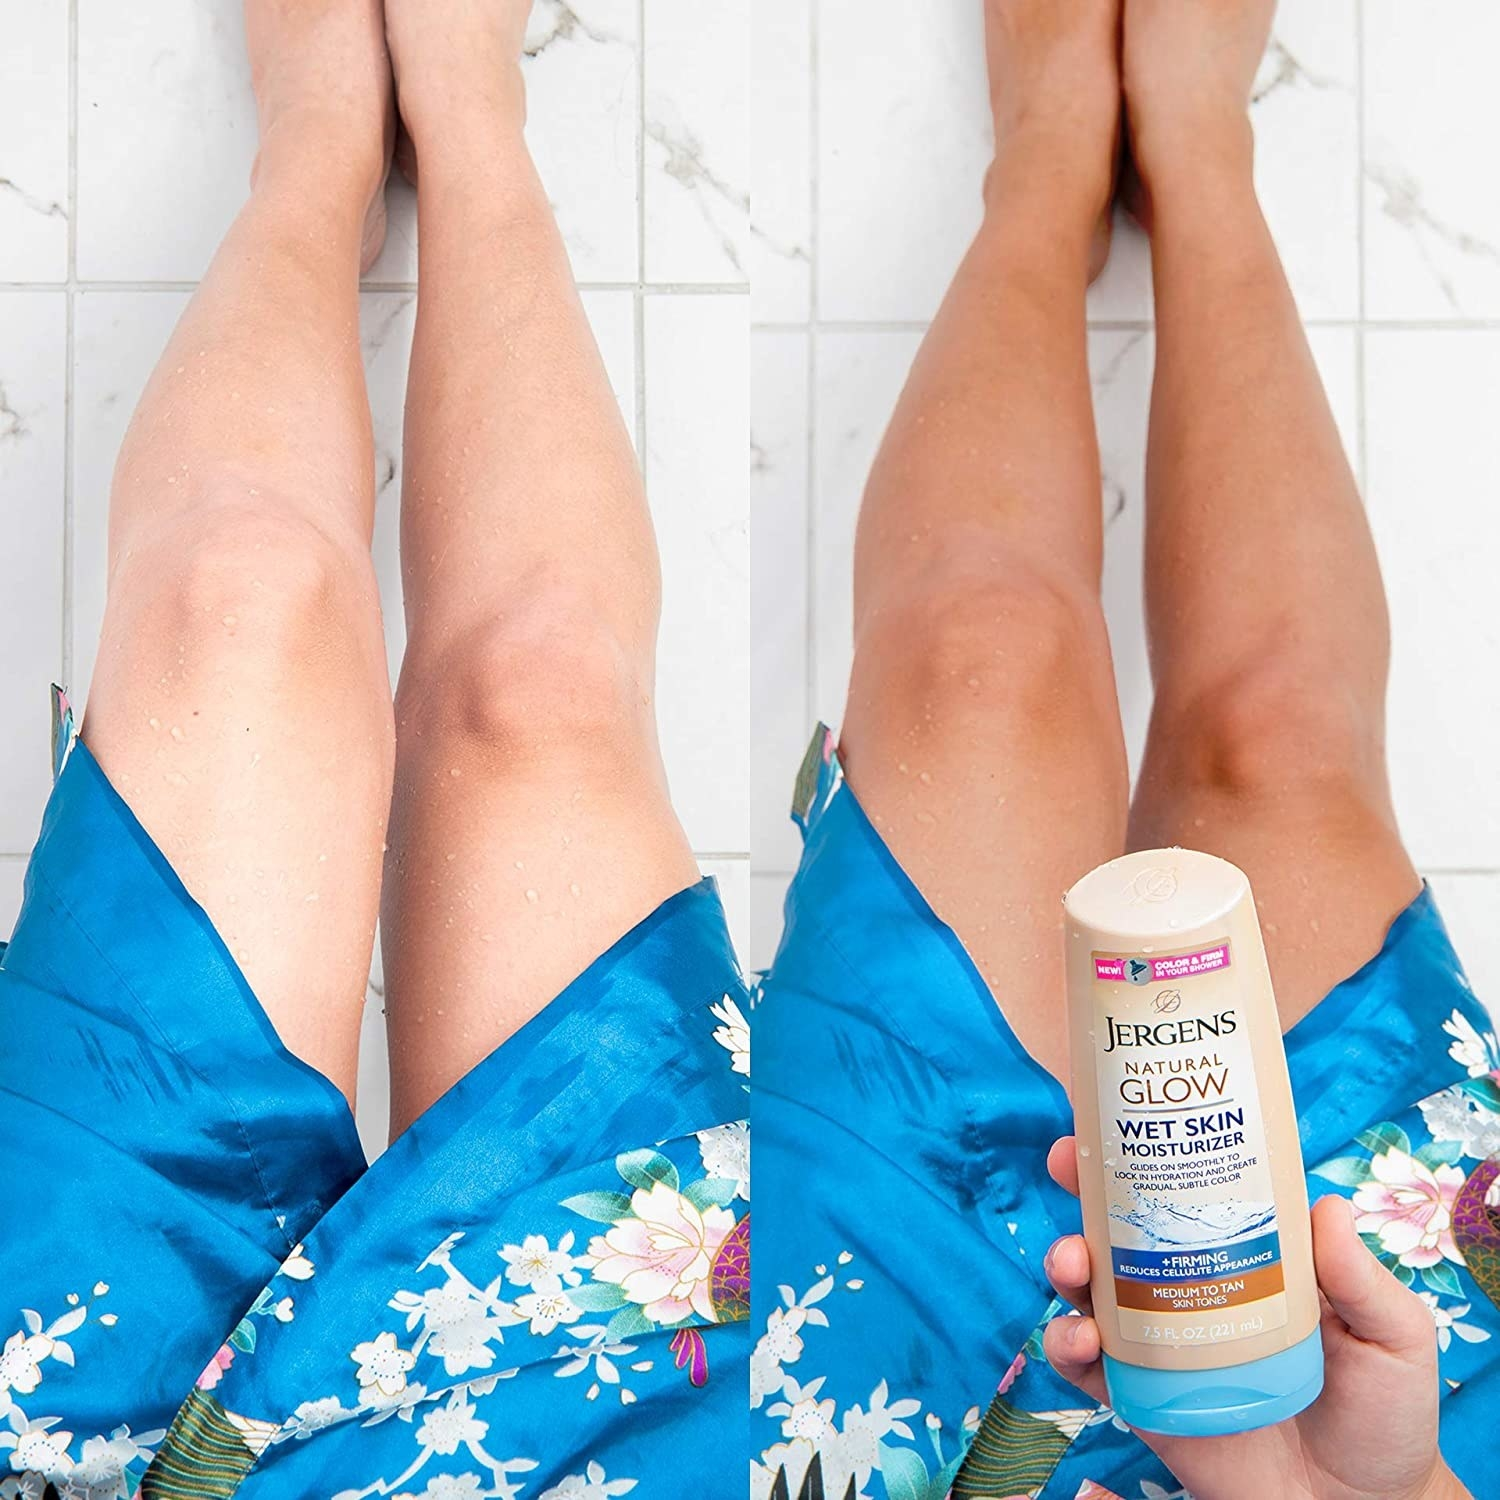 A before and after photo showing the tan that can develop after using the lotion